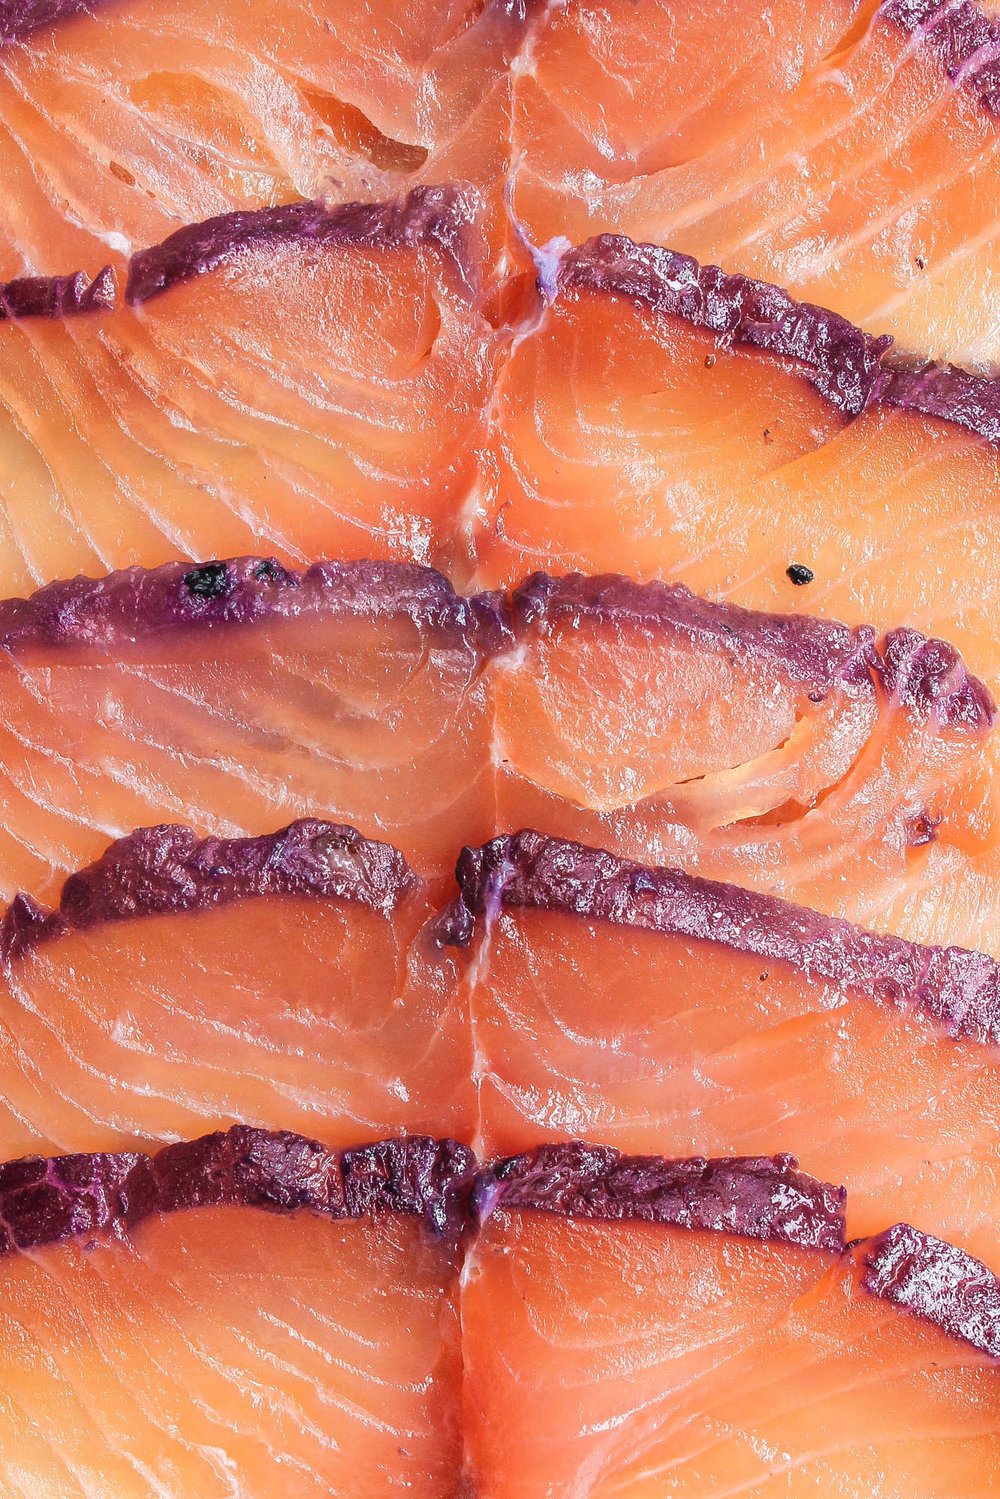 Blueberry Tarragon Gravlax || Easy curing recipe for salmon that is delicious and a rich shade of purple. Gravlax (lox or cured salmon) is perfect with bagels, rye bread, cream cheese, fresh vegetables, crackers, herbs, pickled things and capers! || creamandhoney.ca